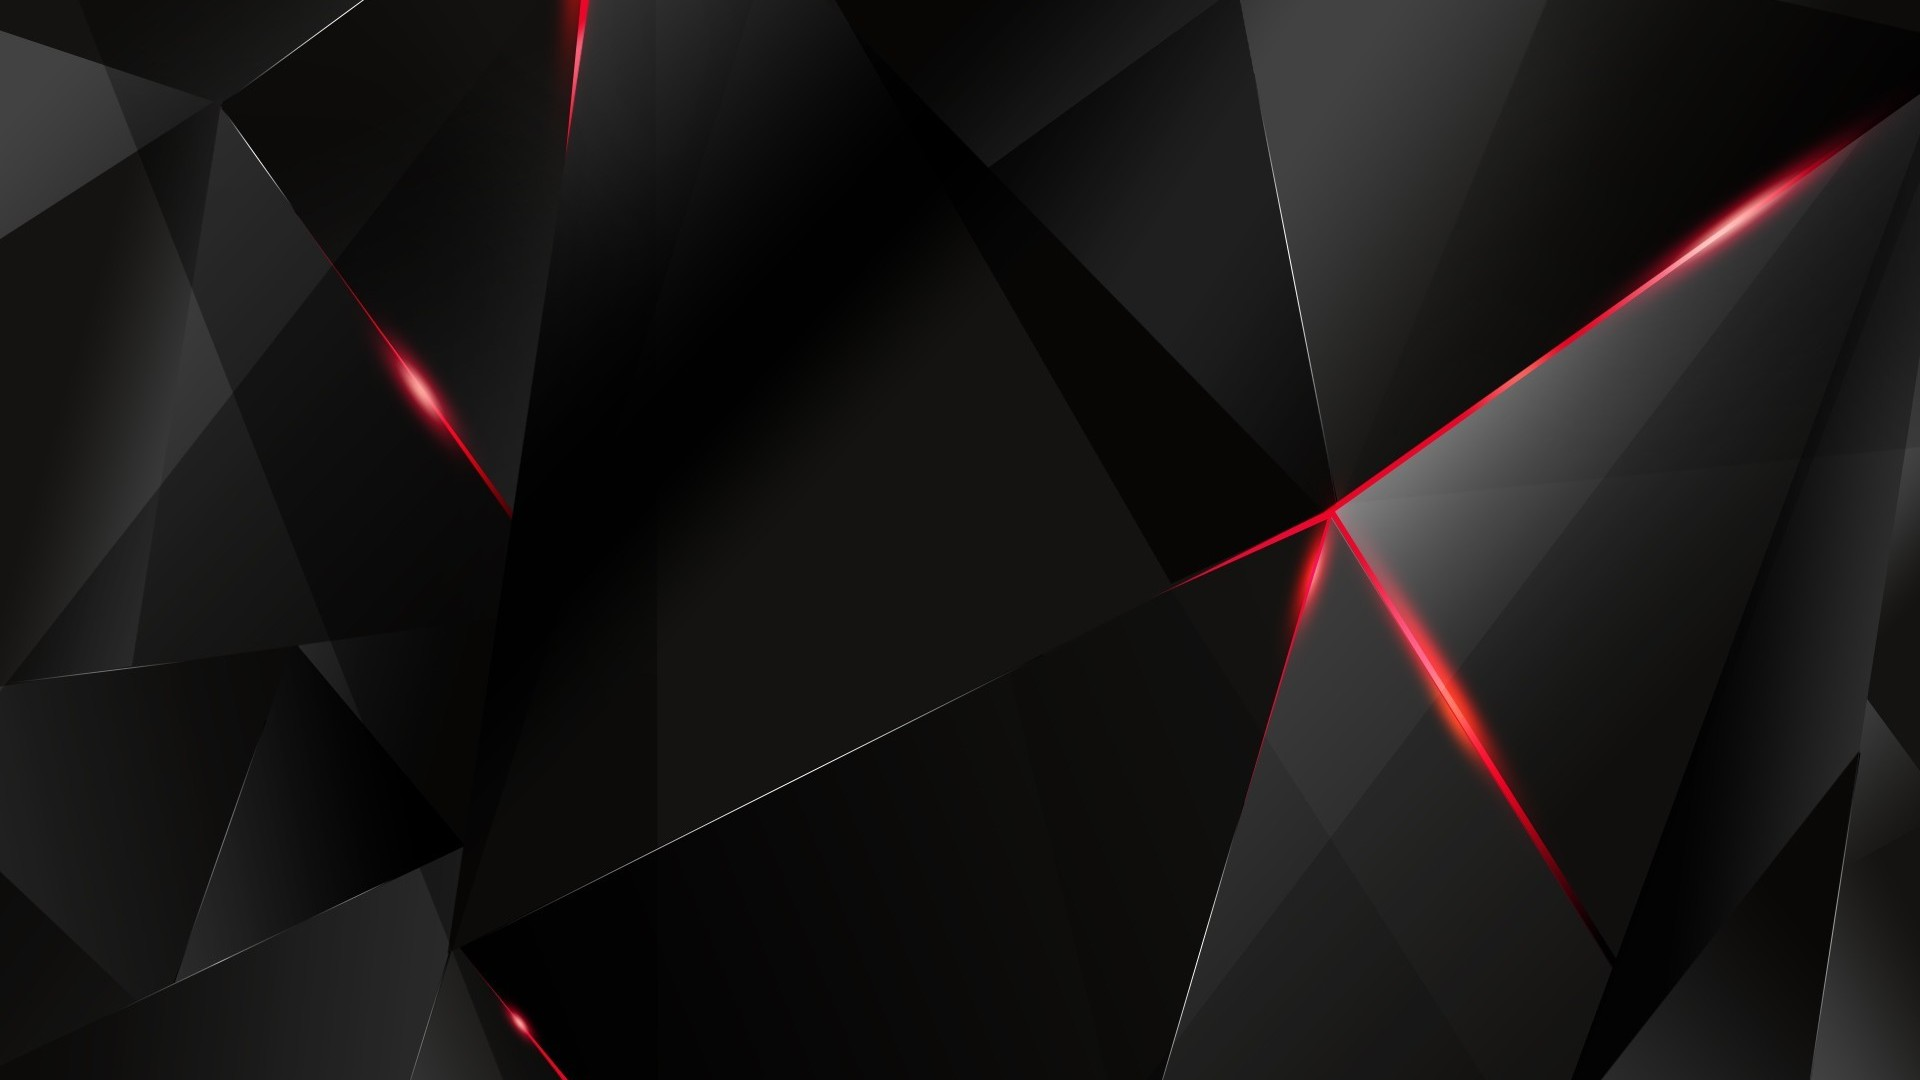 Black Abstract HD Wallpapers Black Abstract high quality 1920x1080